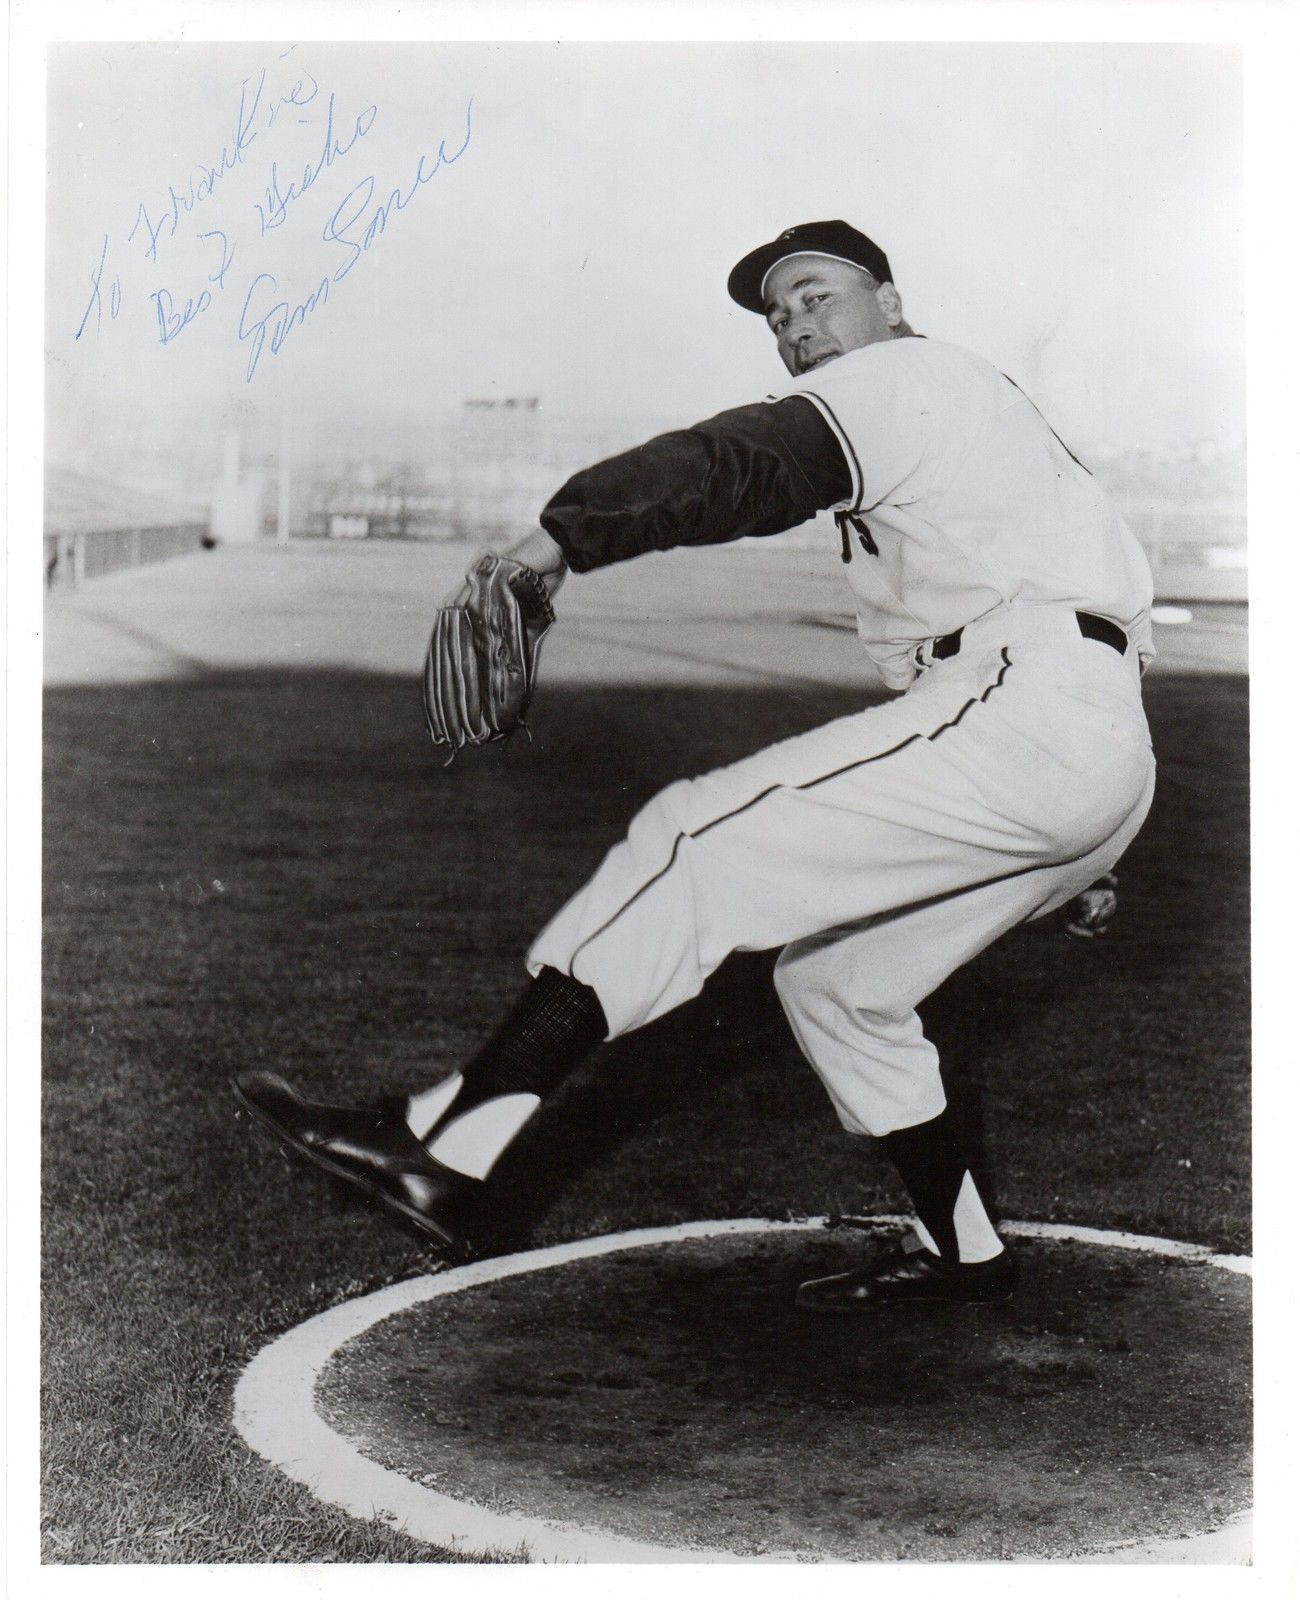 SAM JONES (Toothpick) Signed 8x10 photograph, nicely signed in SF Giants uniform